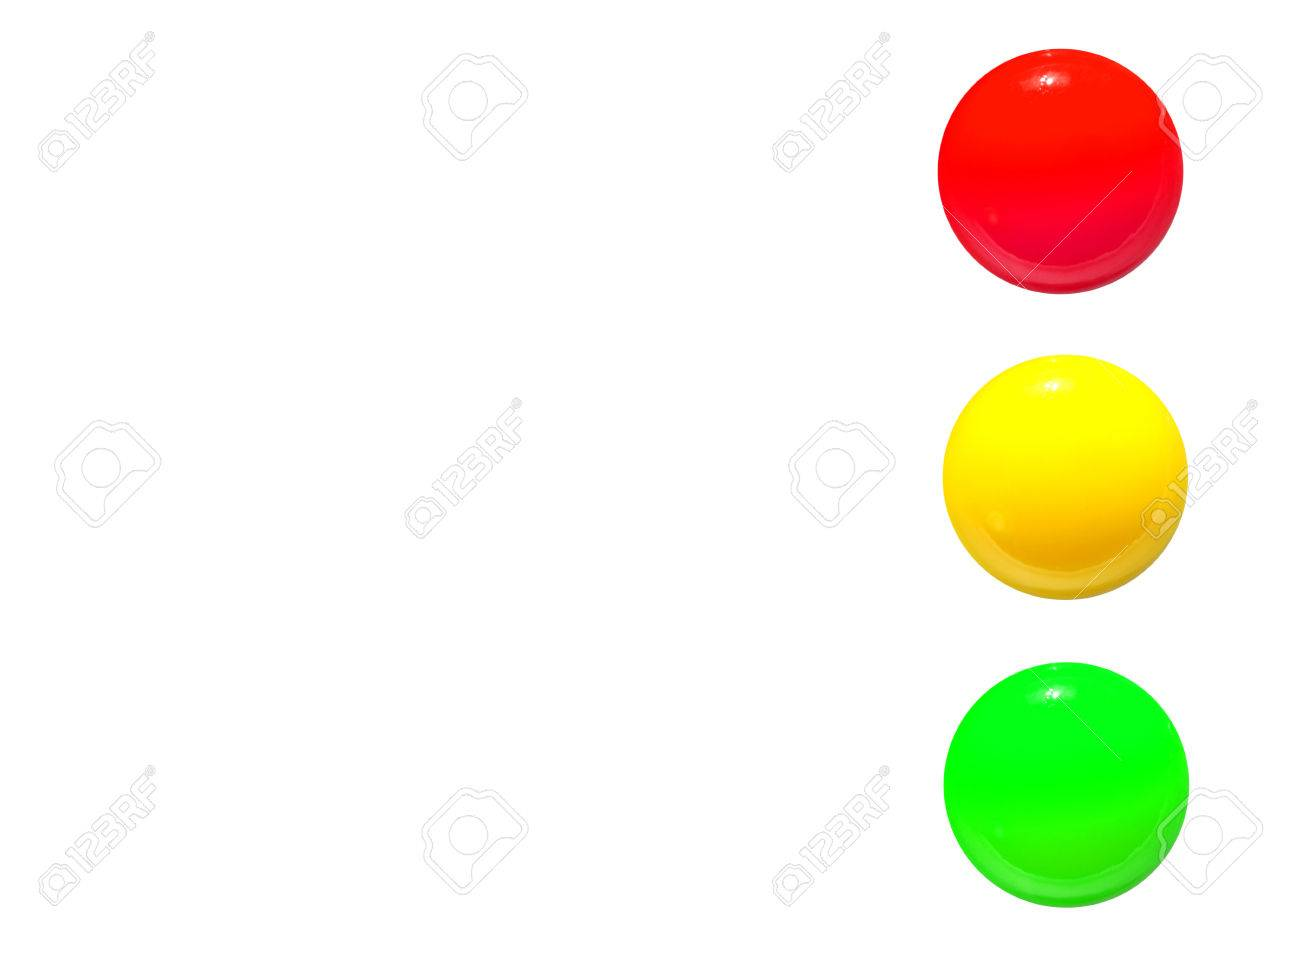 Stock Photo   Traffic Lights Icon Red Yellow Green On White Background Photo Gallery